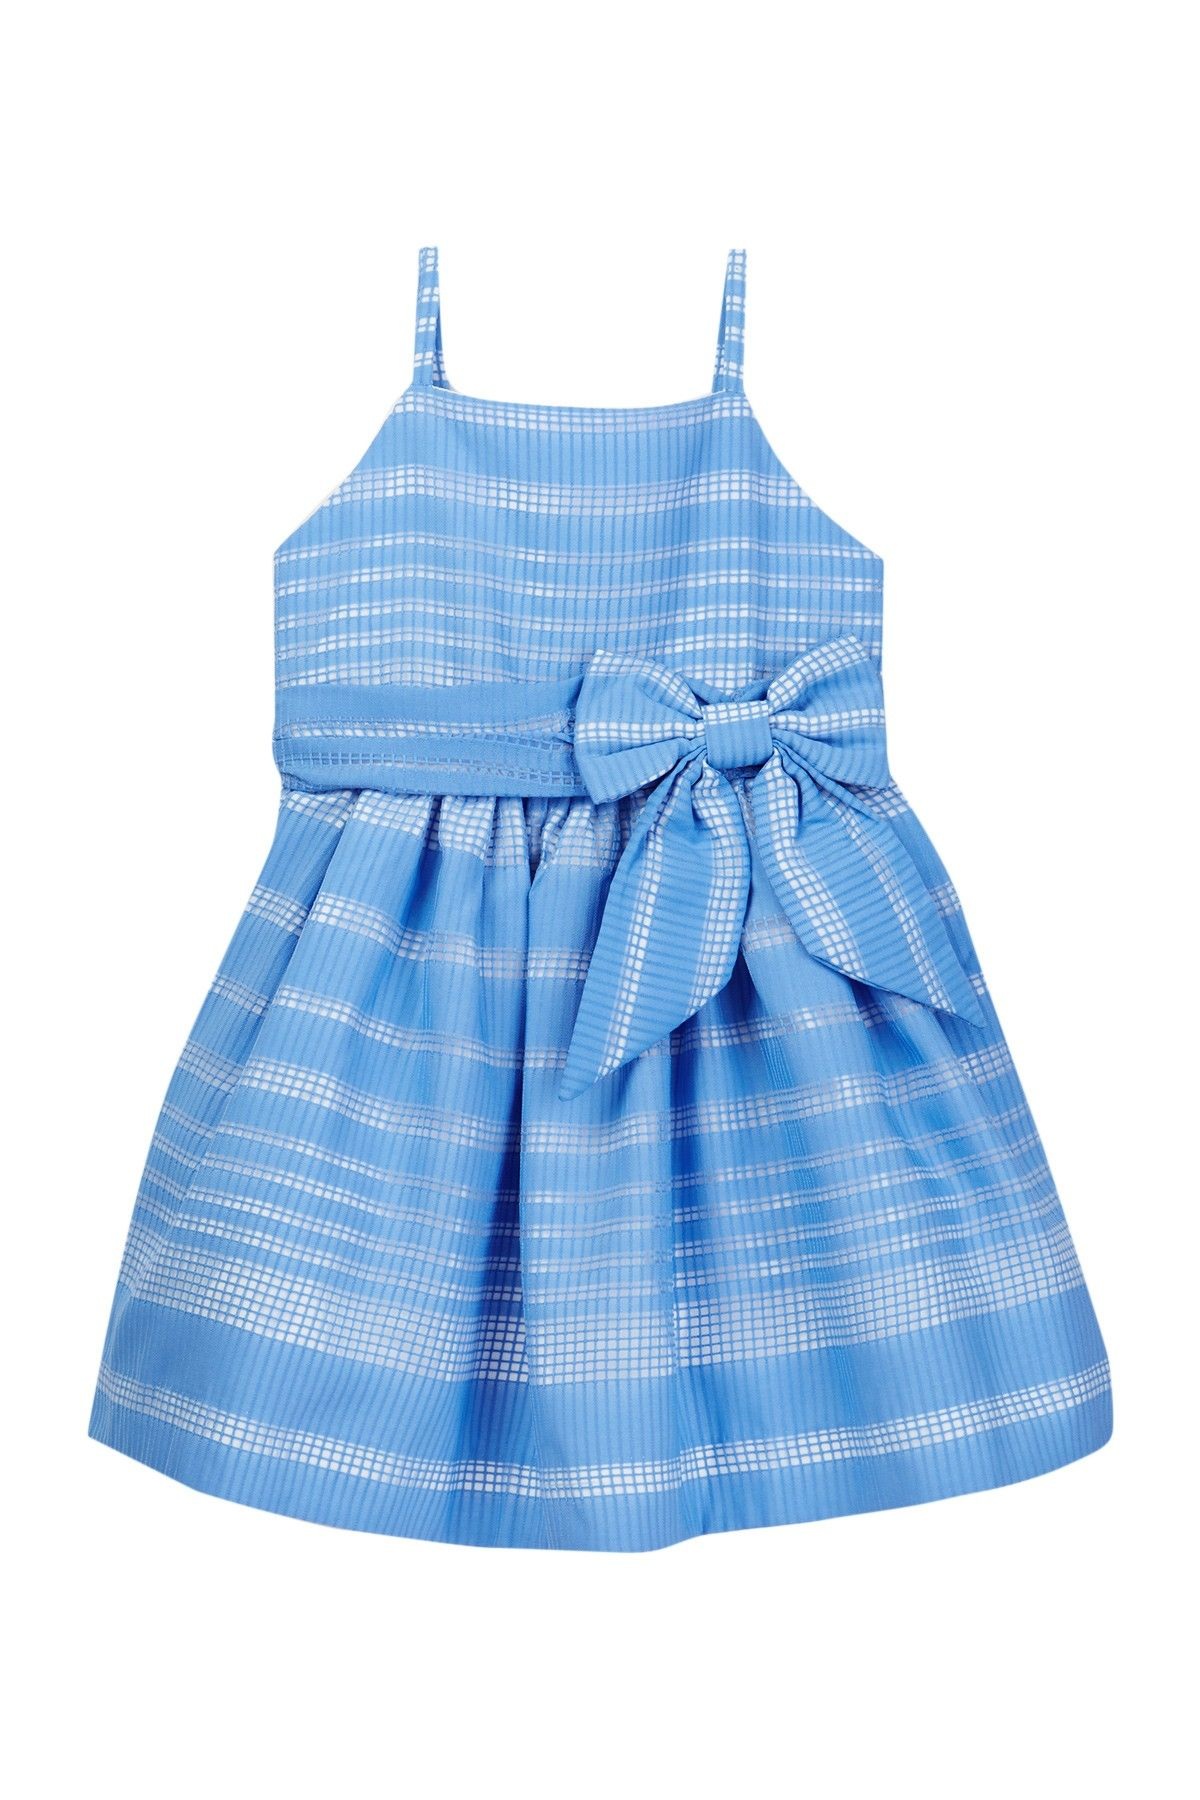 kate spade new york | party dress (Toddler & Little Girls | Products